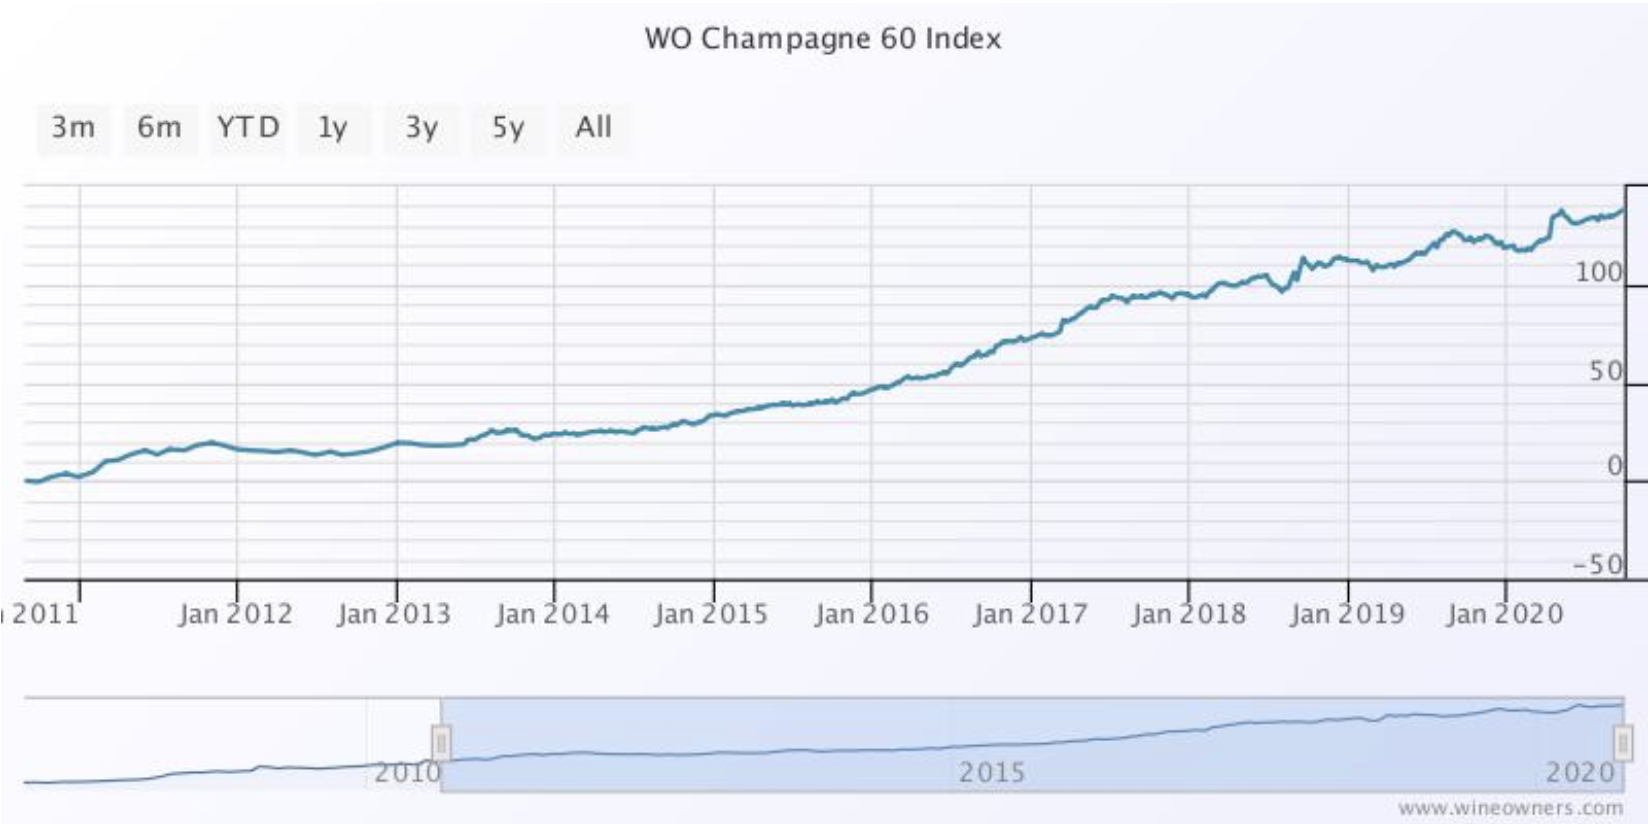 Wine Owners - WO Champagne 60 Index - Sept 2020